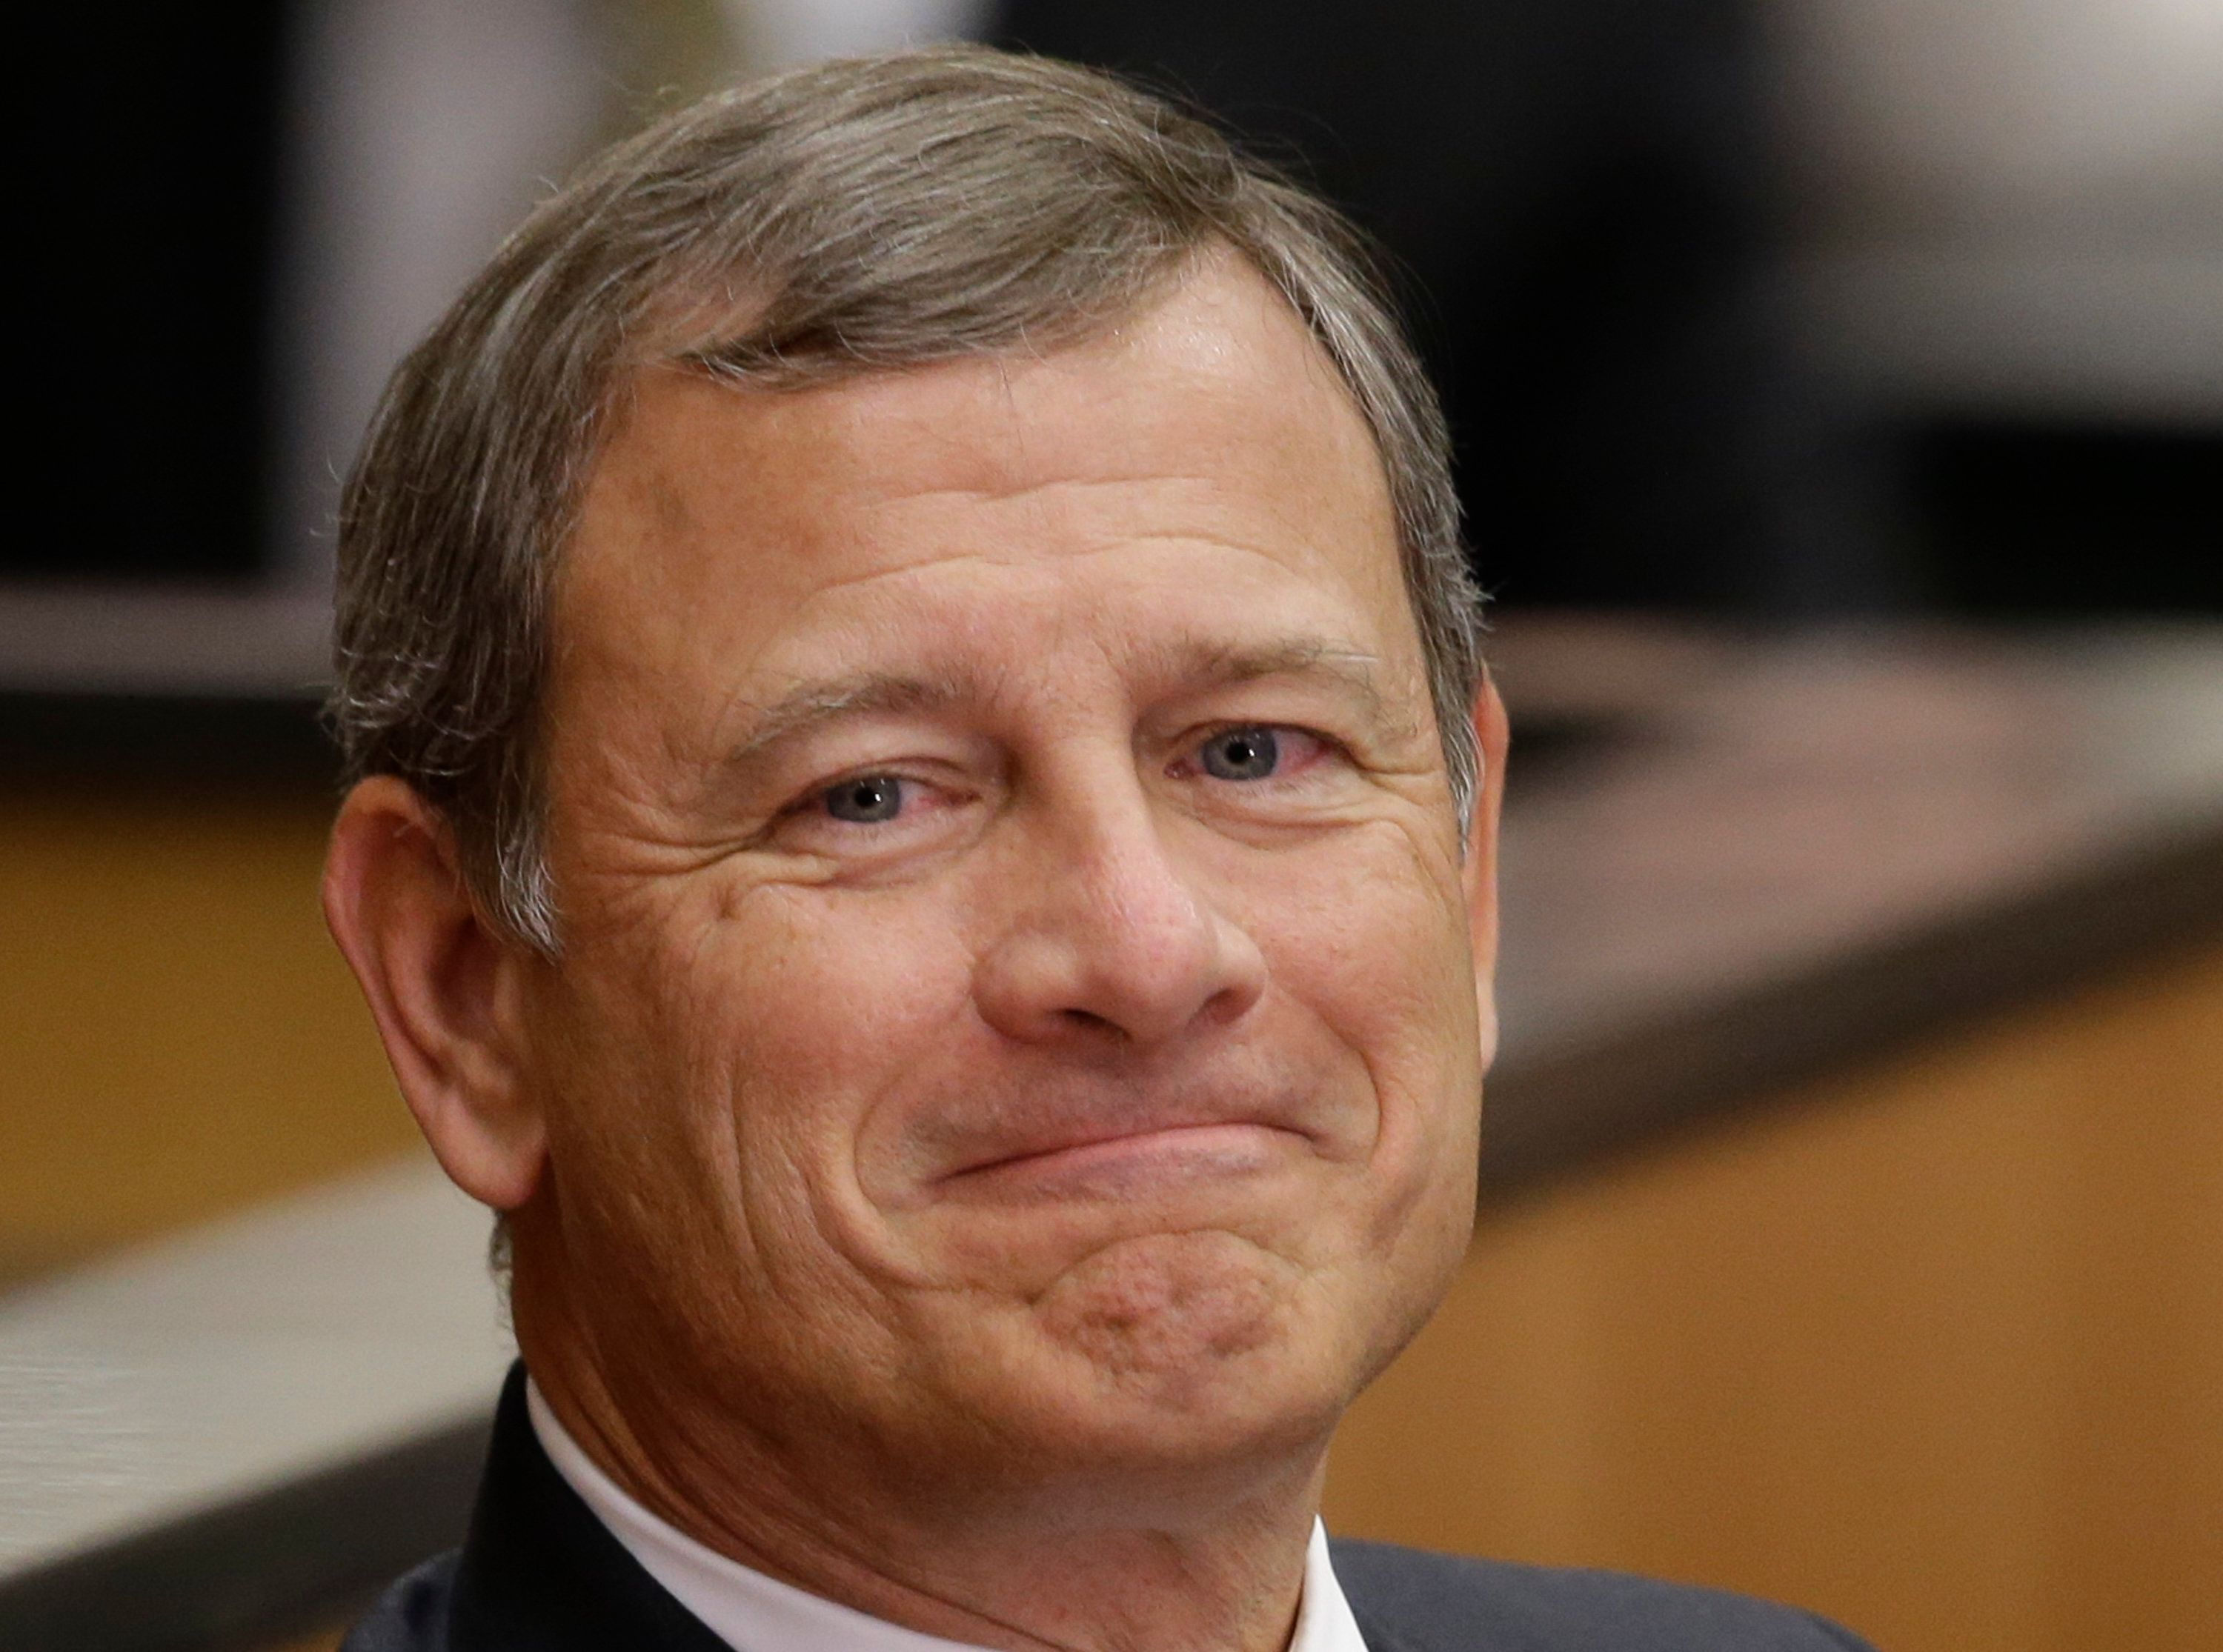 Chief Justice John Roberts acknowledged the plight of employeesfacing workplace discrimination Monday.